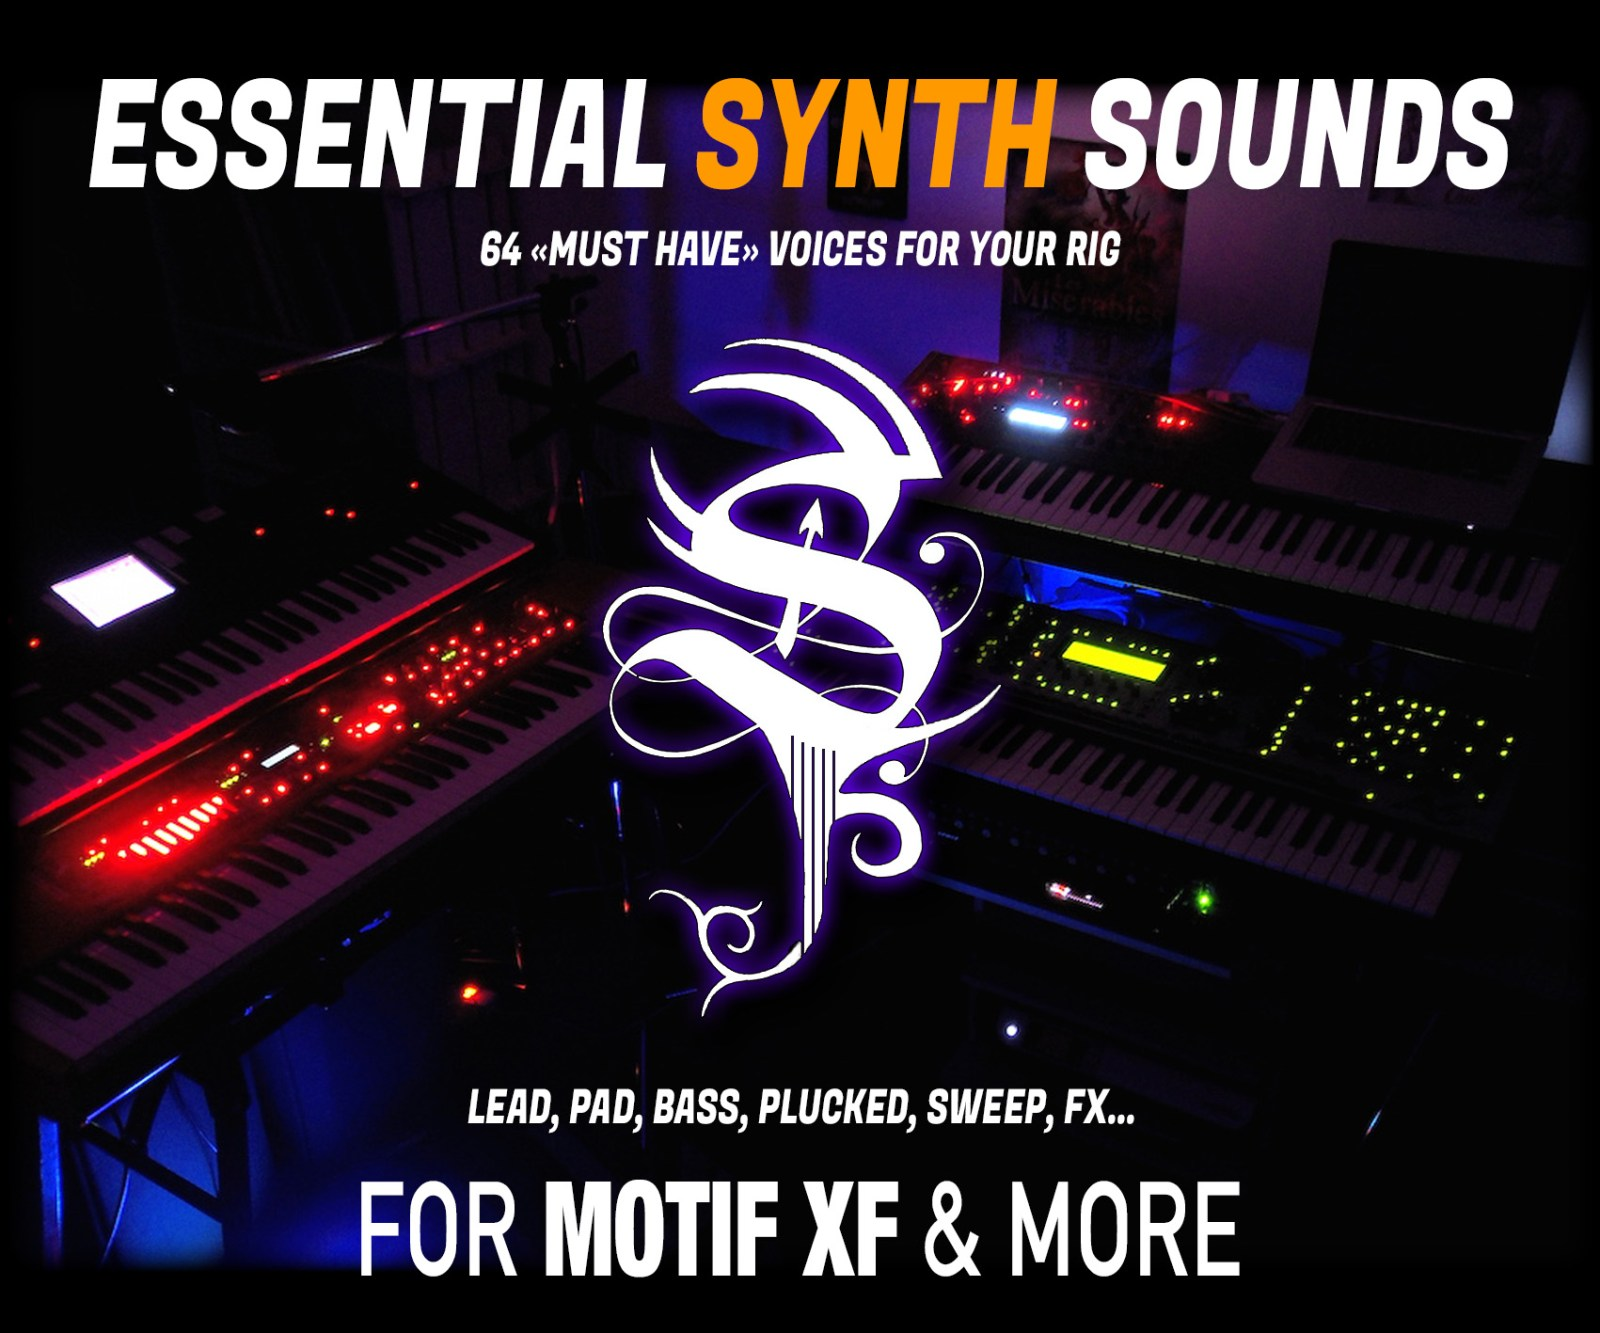 Essential Synth Sounds 64